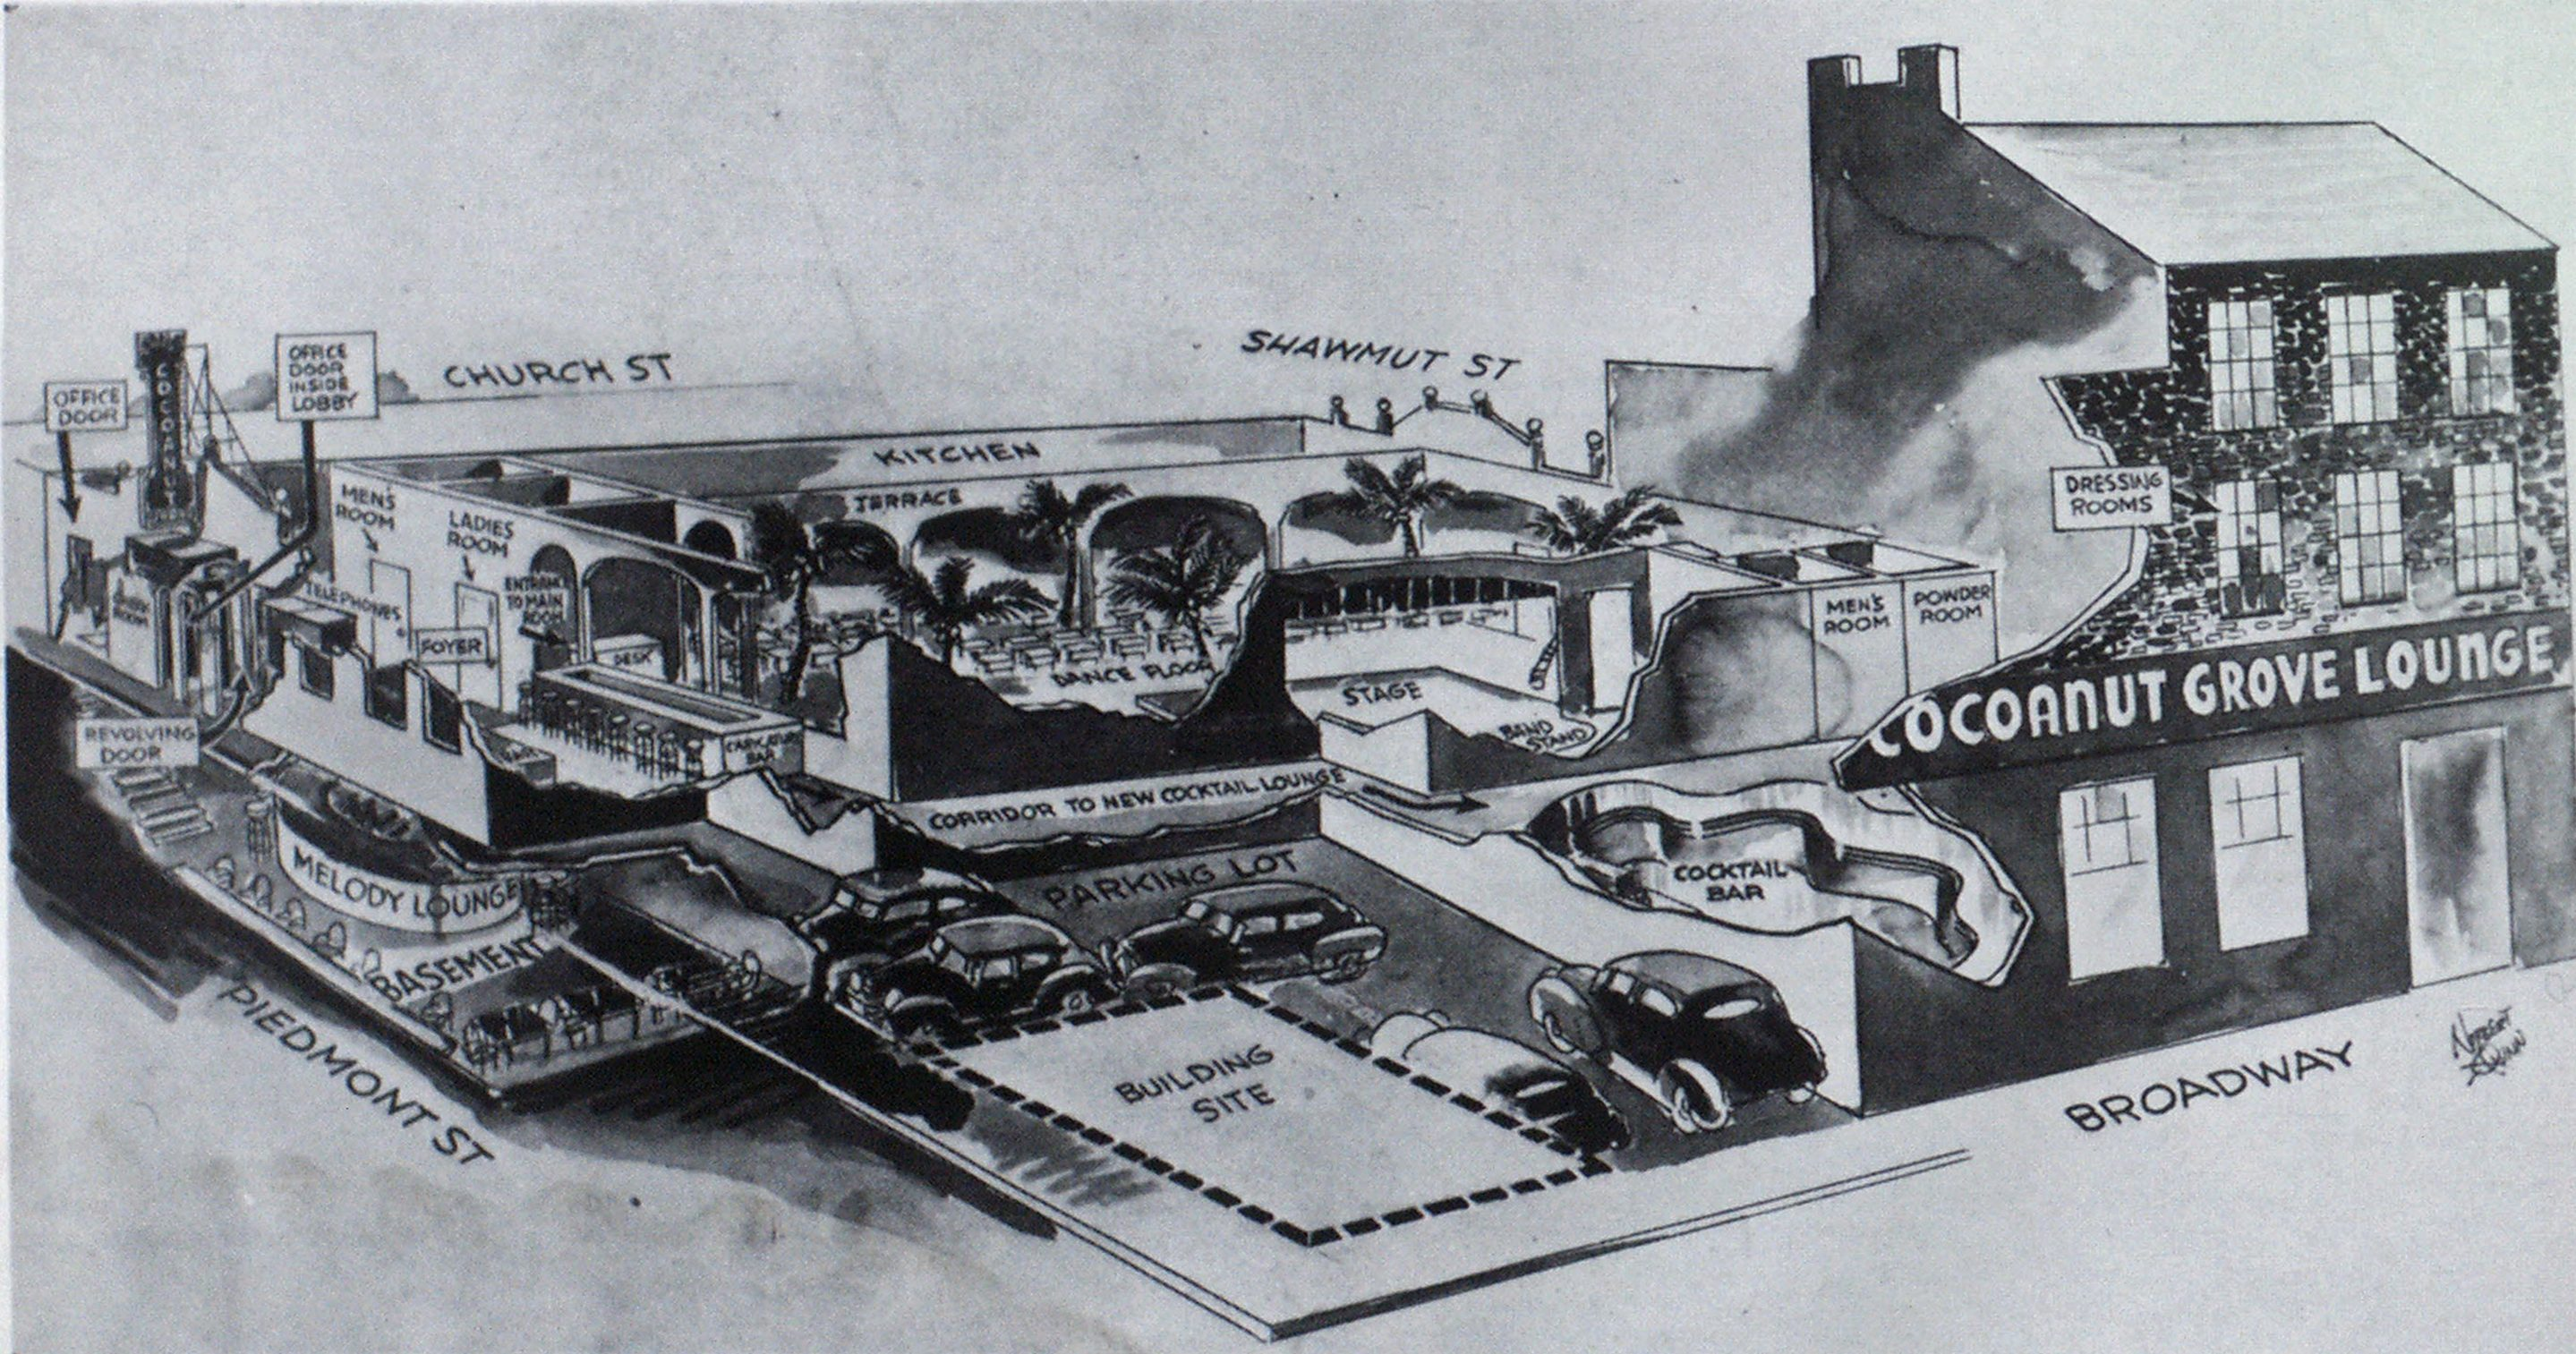 Cutaway drawing shows location of various sections of the Cocoanut Grove.